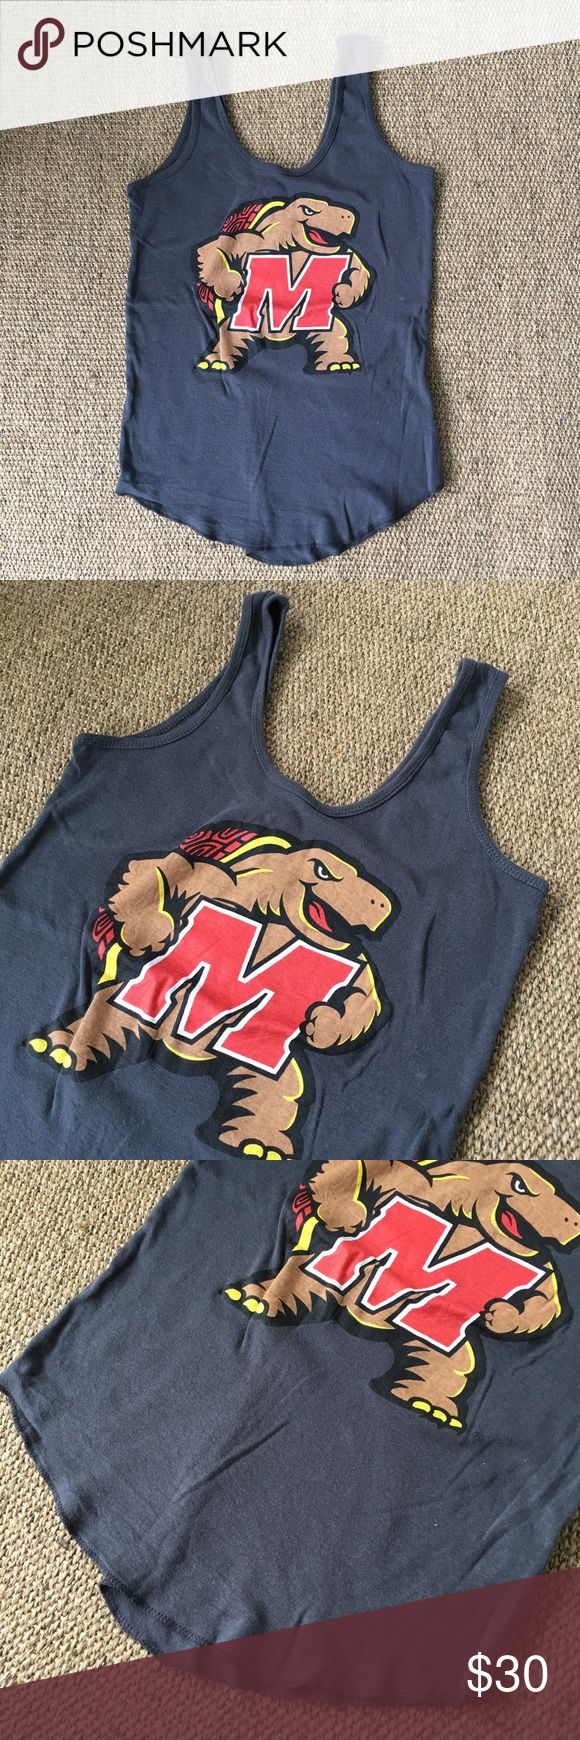 University of Maryland Terrapins Gray Tank XS-S Only worn and washed once. Shrank in the wash, so now better fits XS-S. 100% Cotton. 🐾 Pet-friendly, smoke-free home. 🚫 No trades. No holds. 📦 Fast shipping! 🙋🏻 Considering all reasonable offers! Recycled Karma Tops Tank Tops